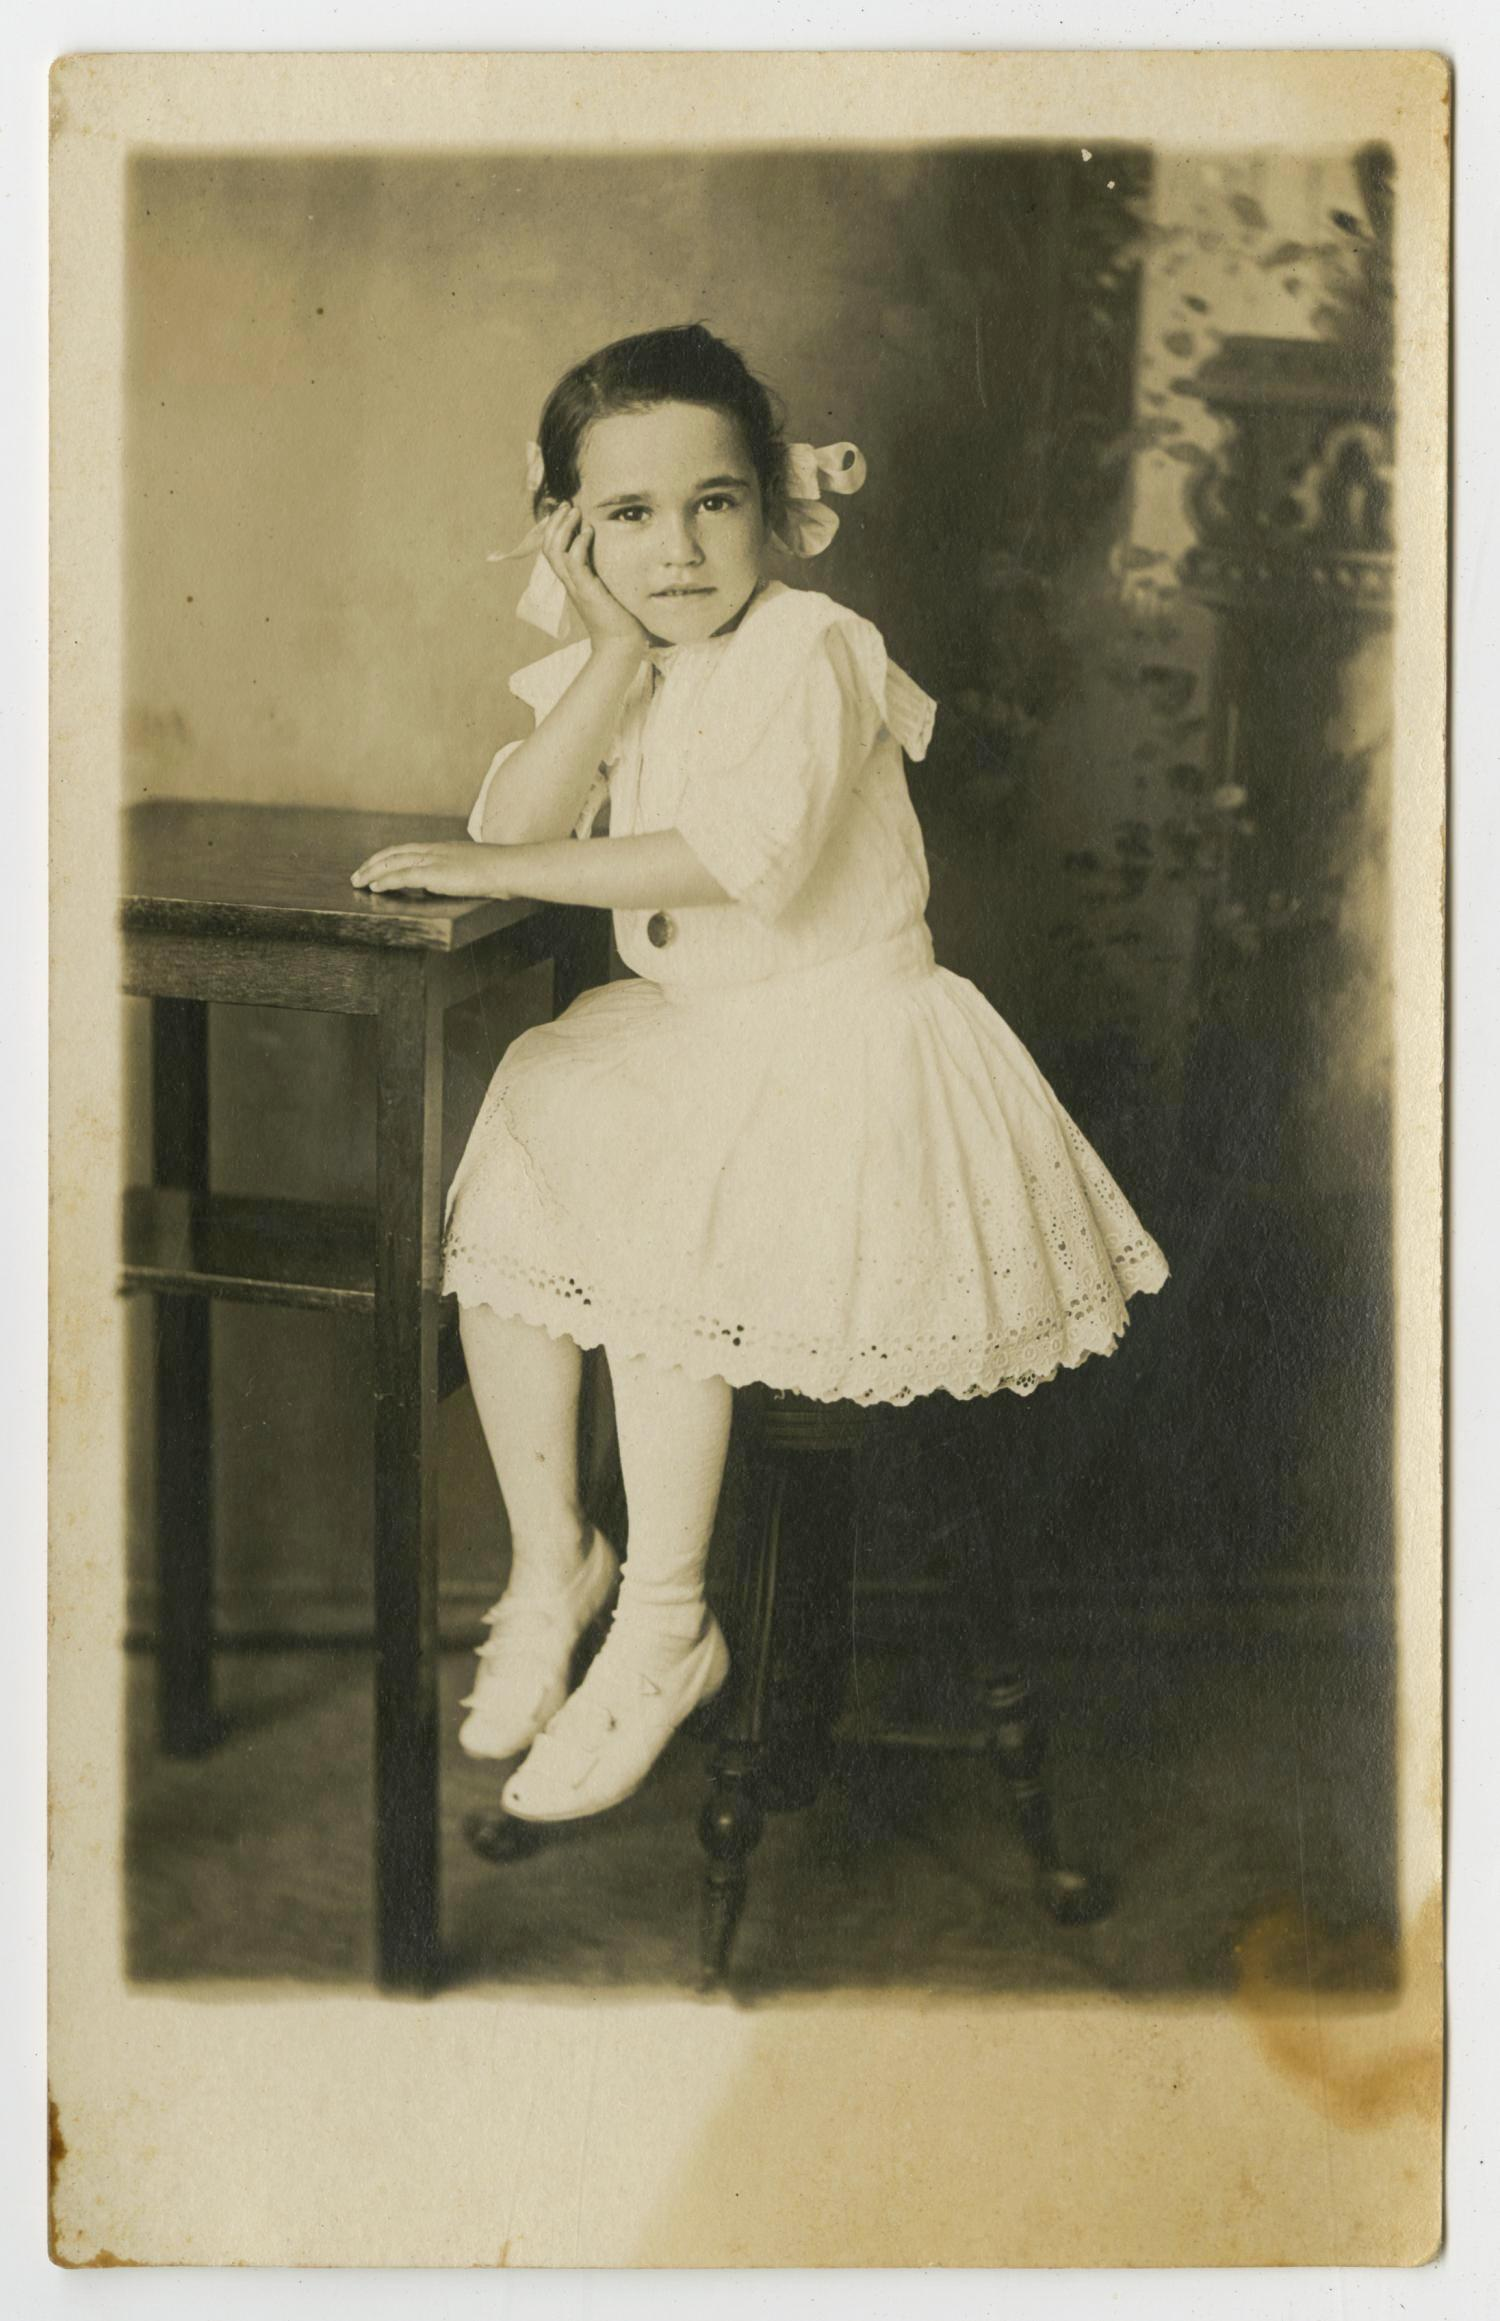 Tennessee State Library and Archives: Photograph and Image